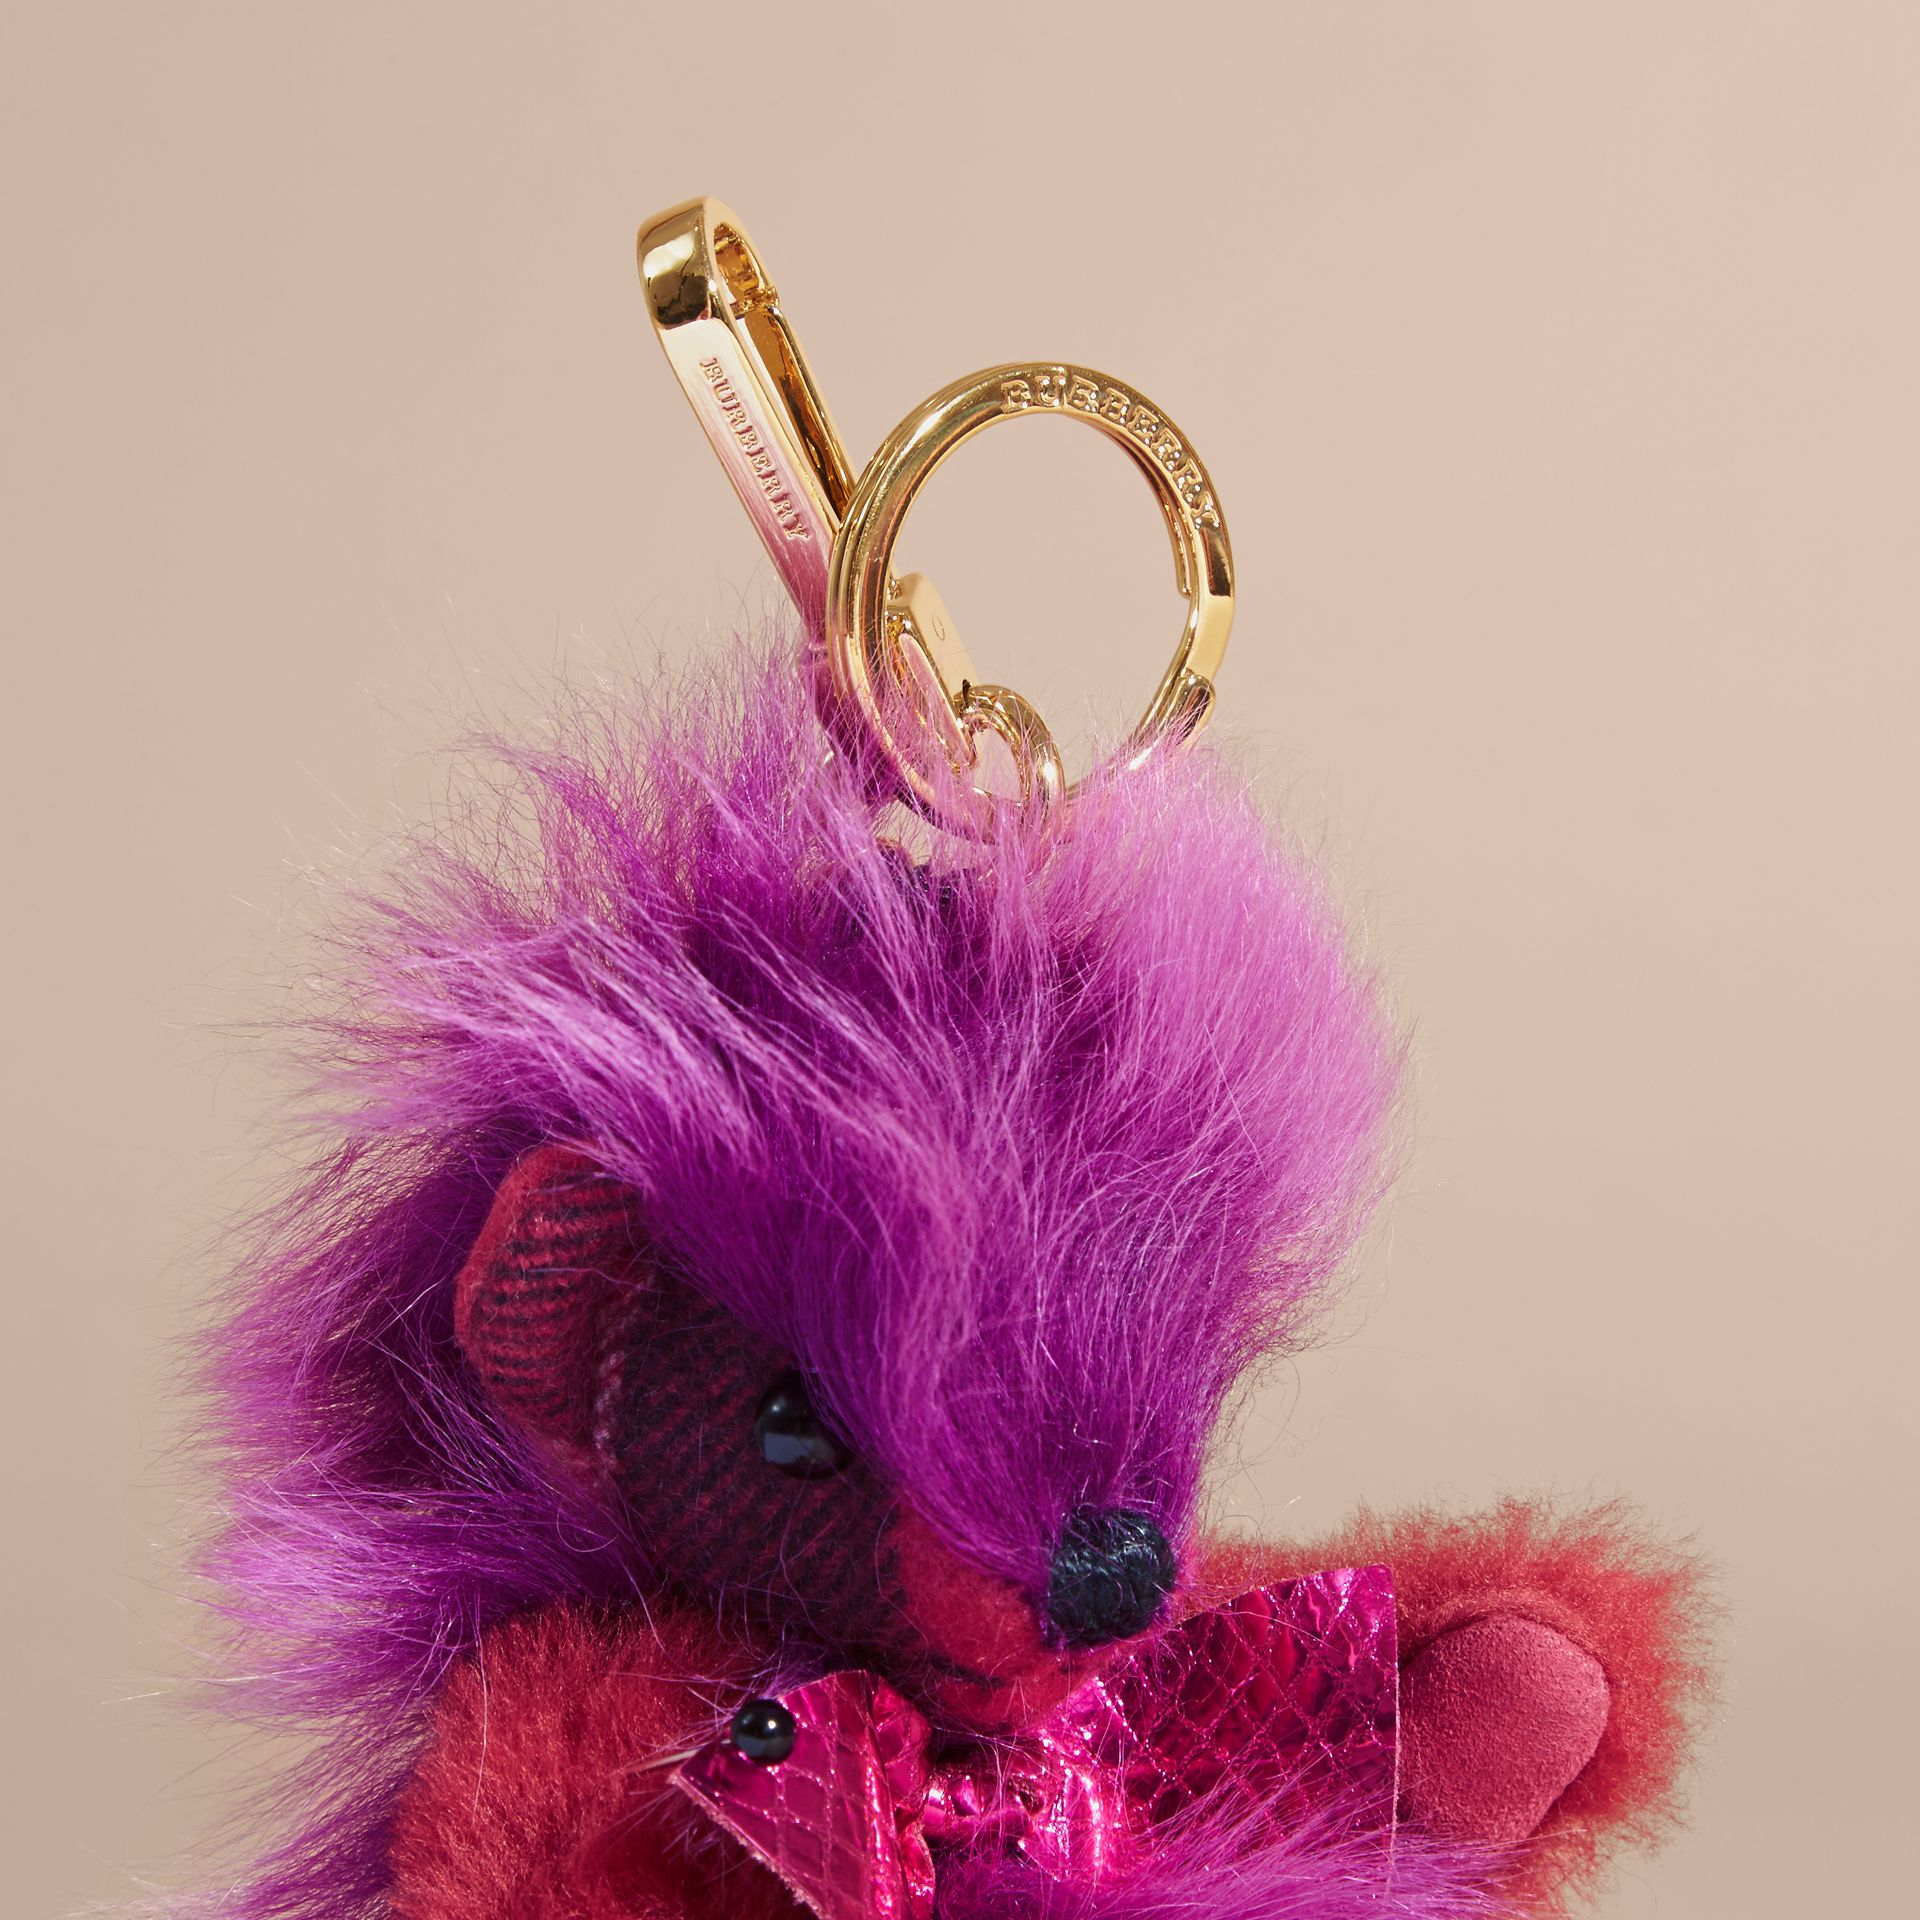 Thomas Bear Pom-Pom Charm in Check Cashmere in Fuchsia Pink - Women | Burberry Australia - gallery image 3